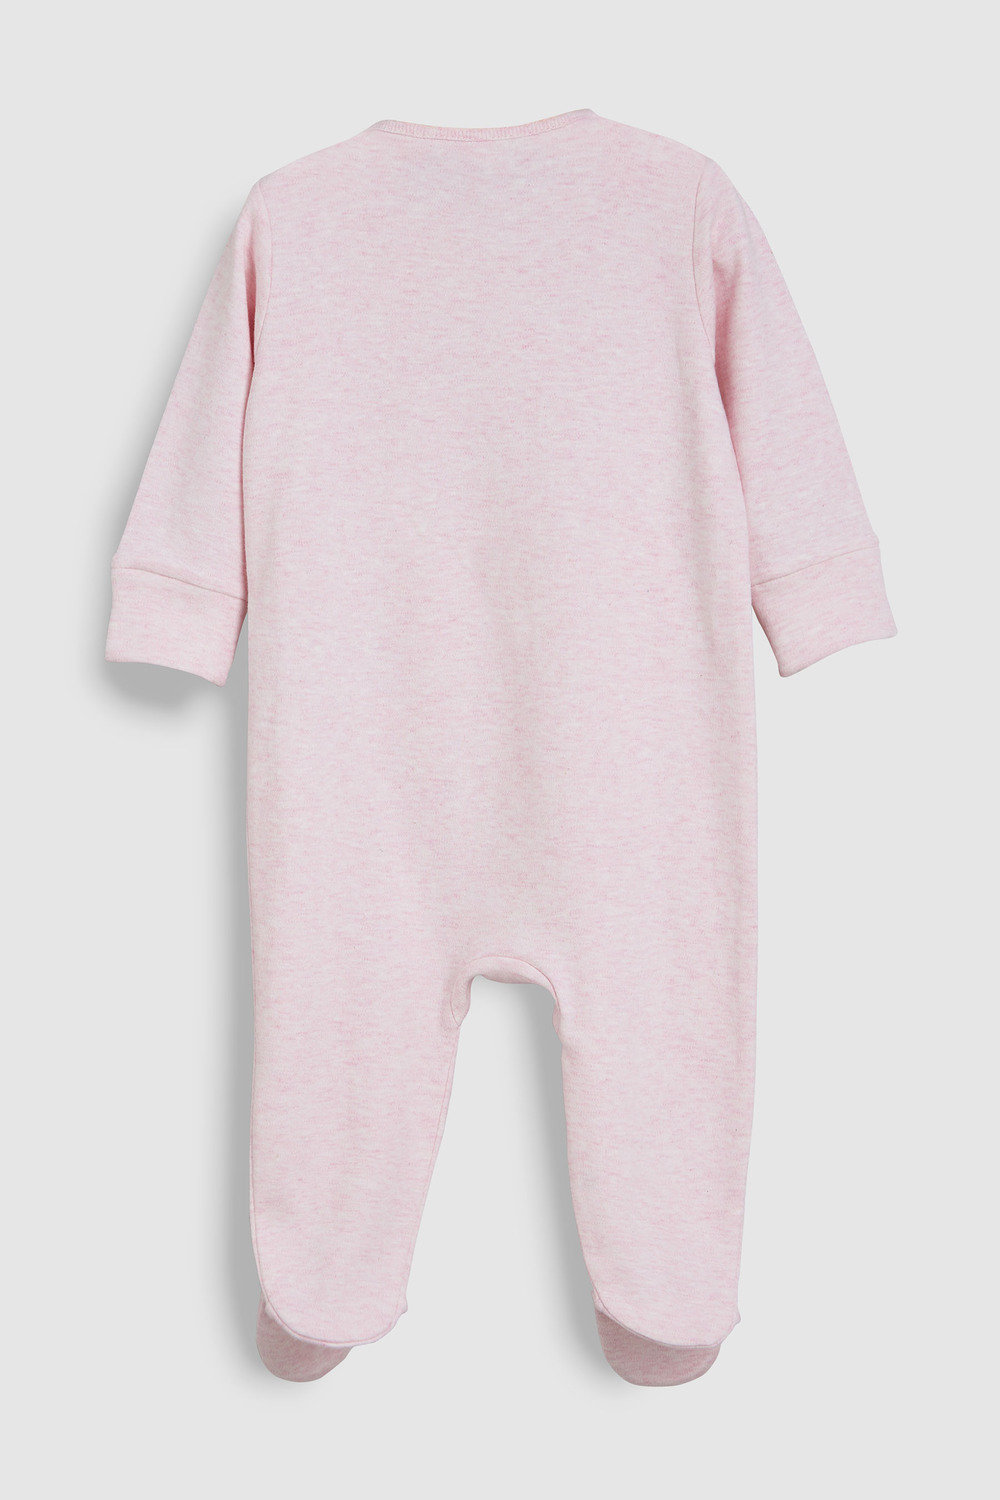 b355f9148 Next Mummy And Daddy Character Sleepsuits Two Pack (0mths-2yrs ...